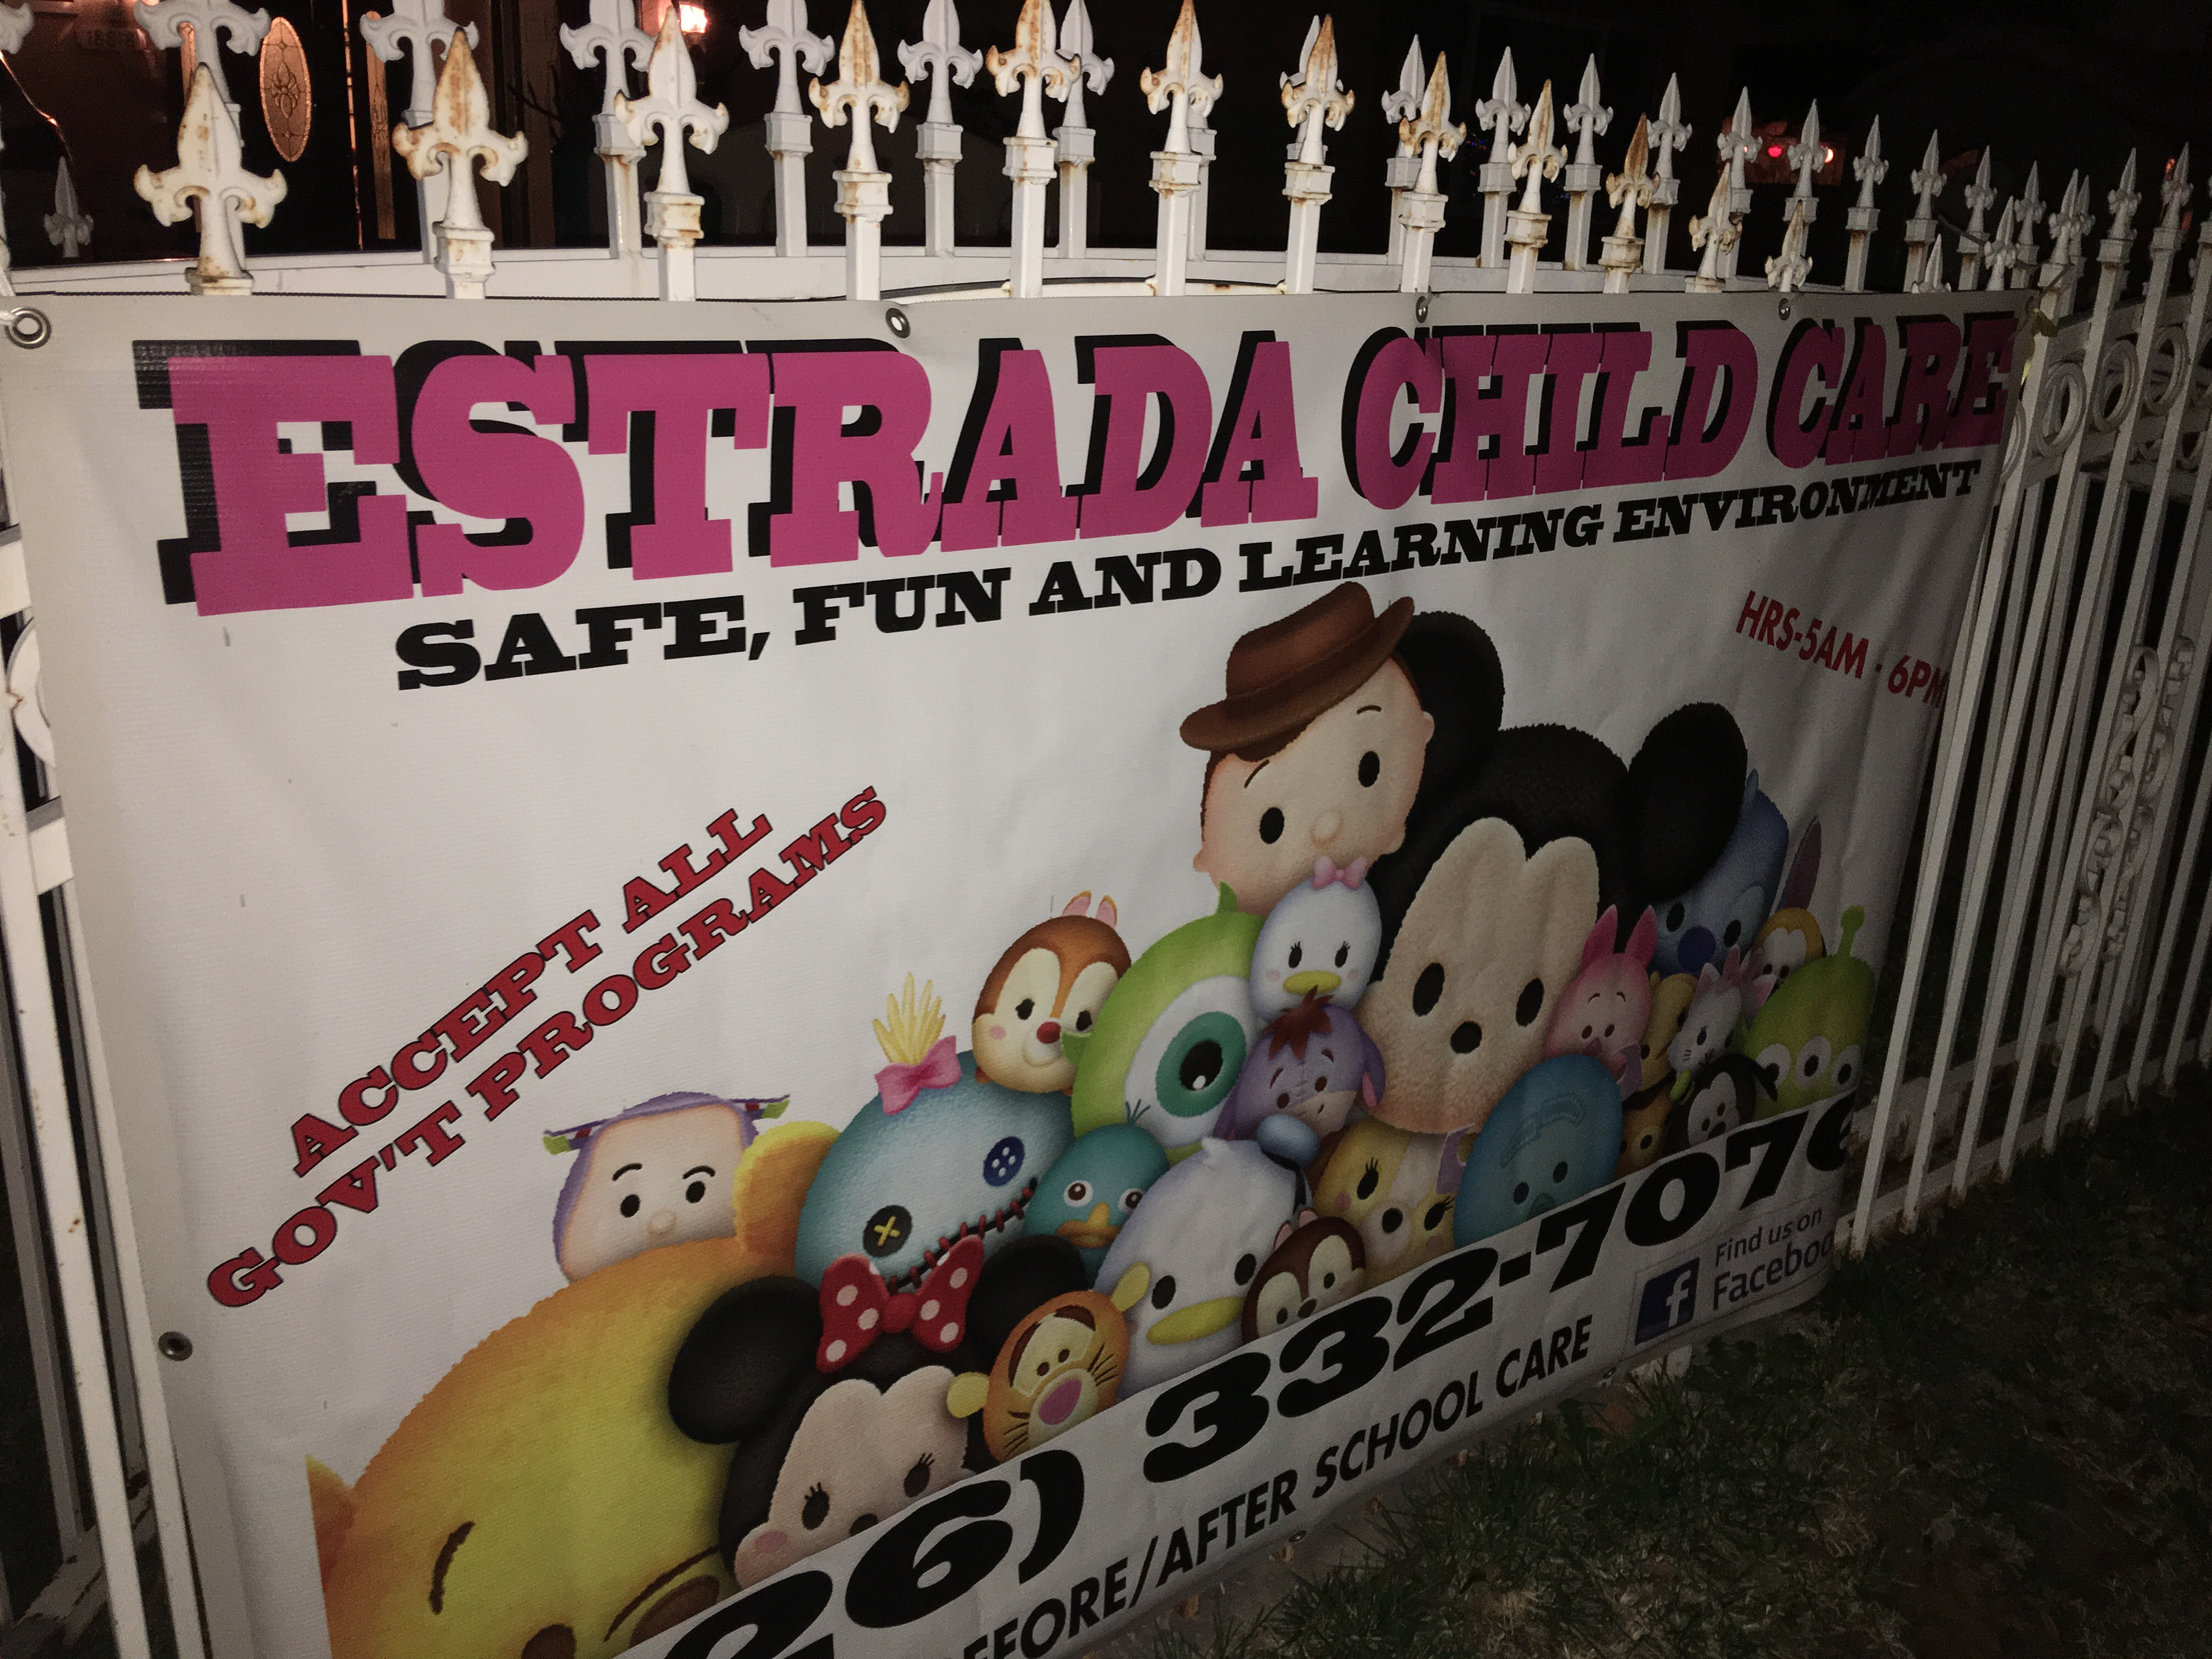 ESTRADA FAMILY CHILD CARE